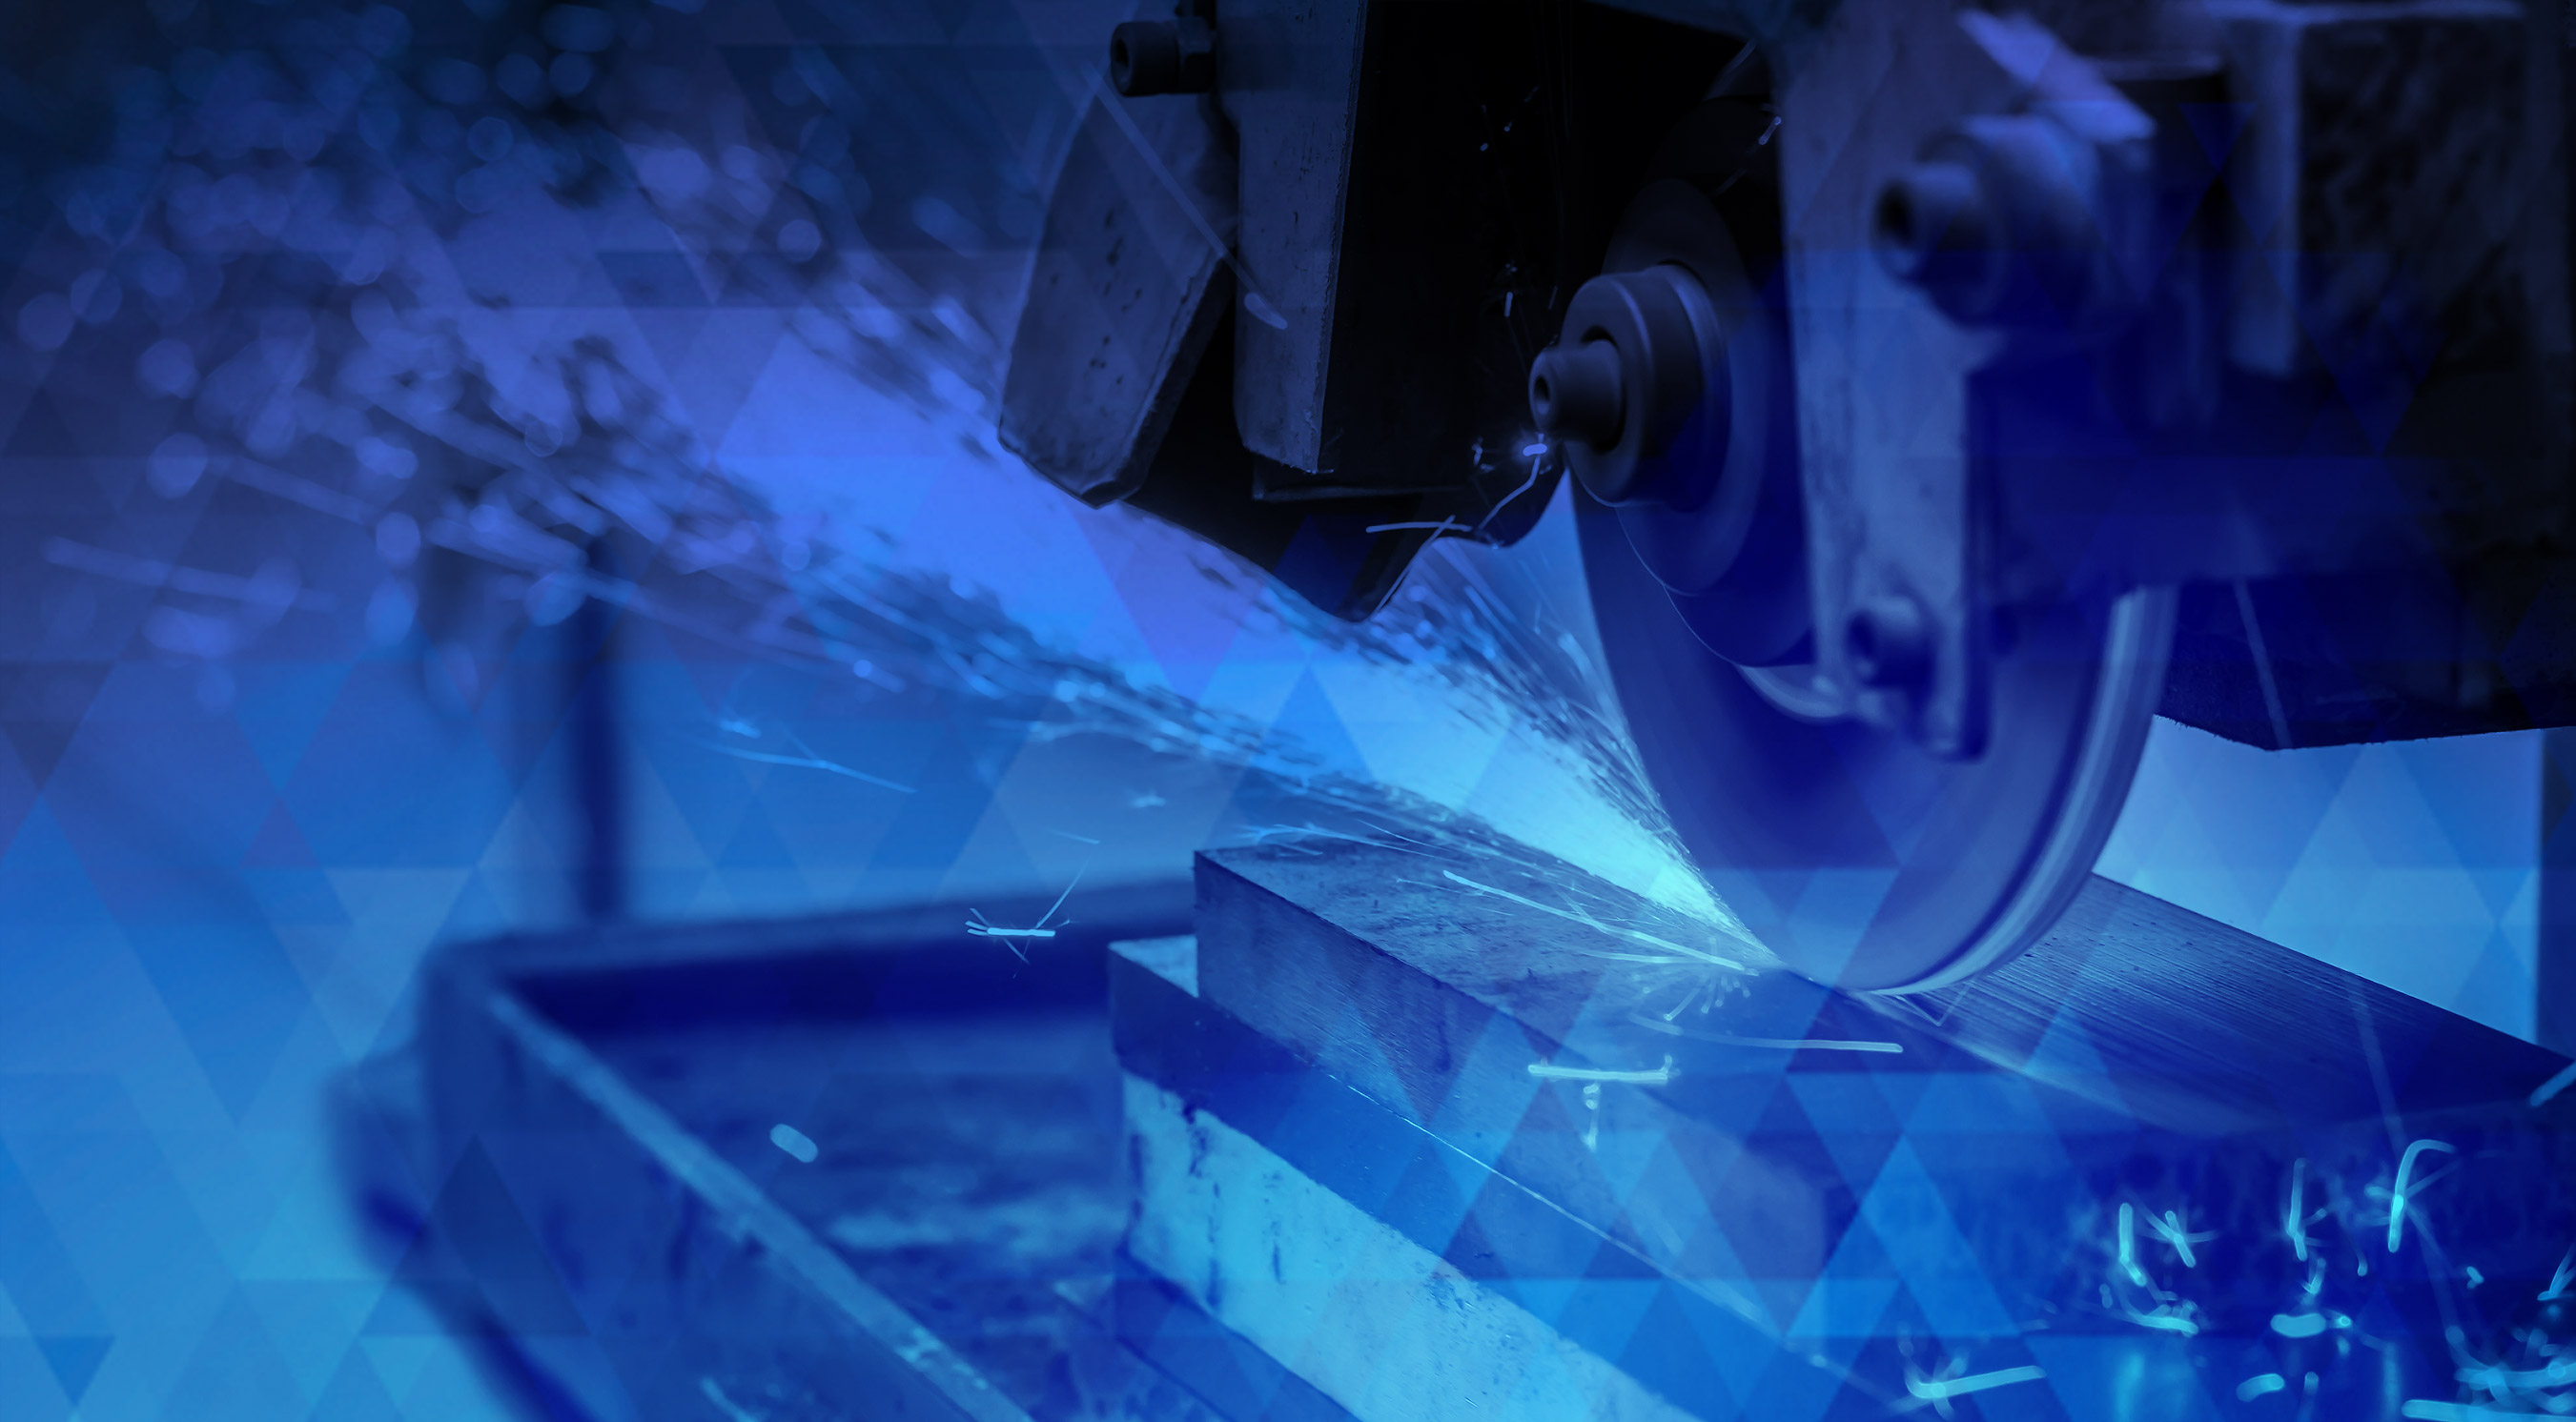 BoerBoel Lasercutting and Sheet Metal Services - Grinding